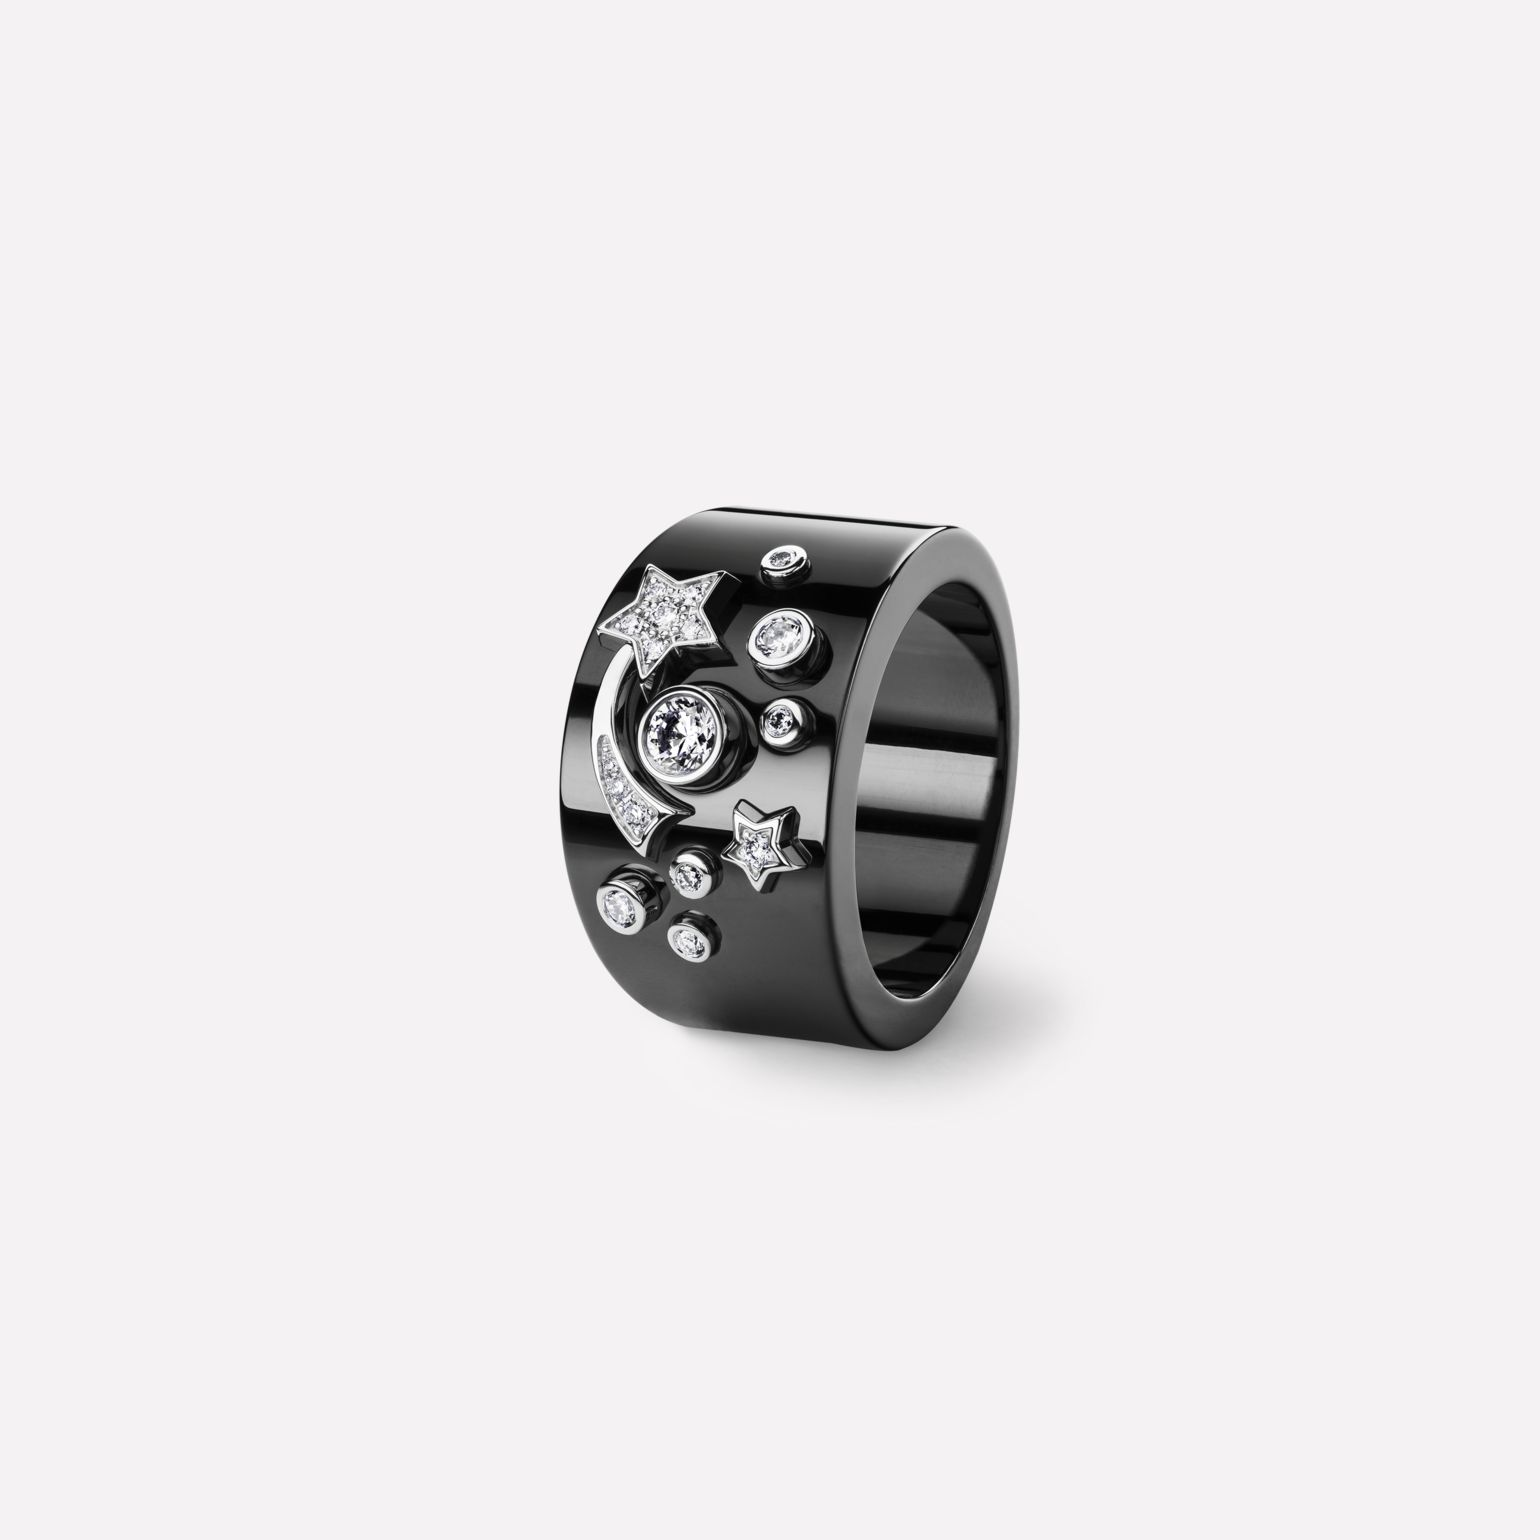 Comète Ring Star ring in black ceramic, 18K white gold and diamonds. Large version.